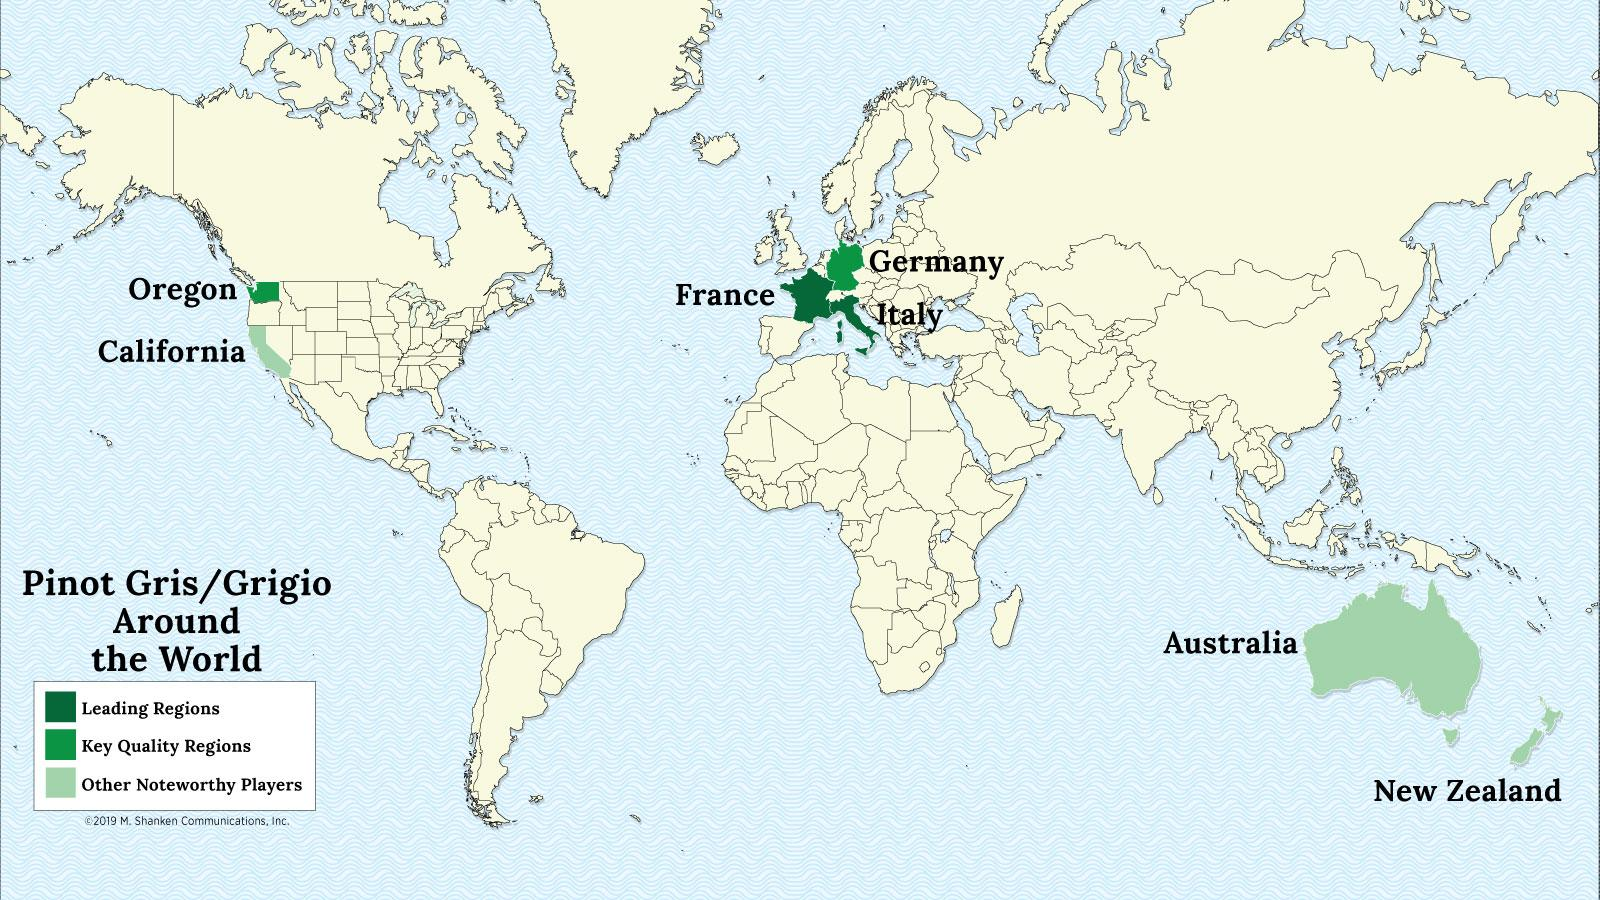 A map of the world with France, Italy, Germany, Oregon, California and Australia highlighted